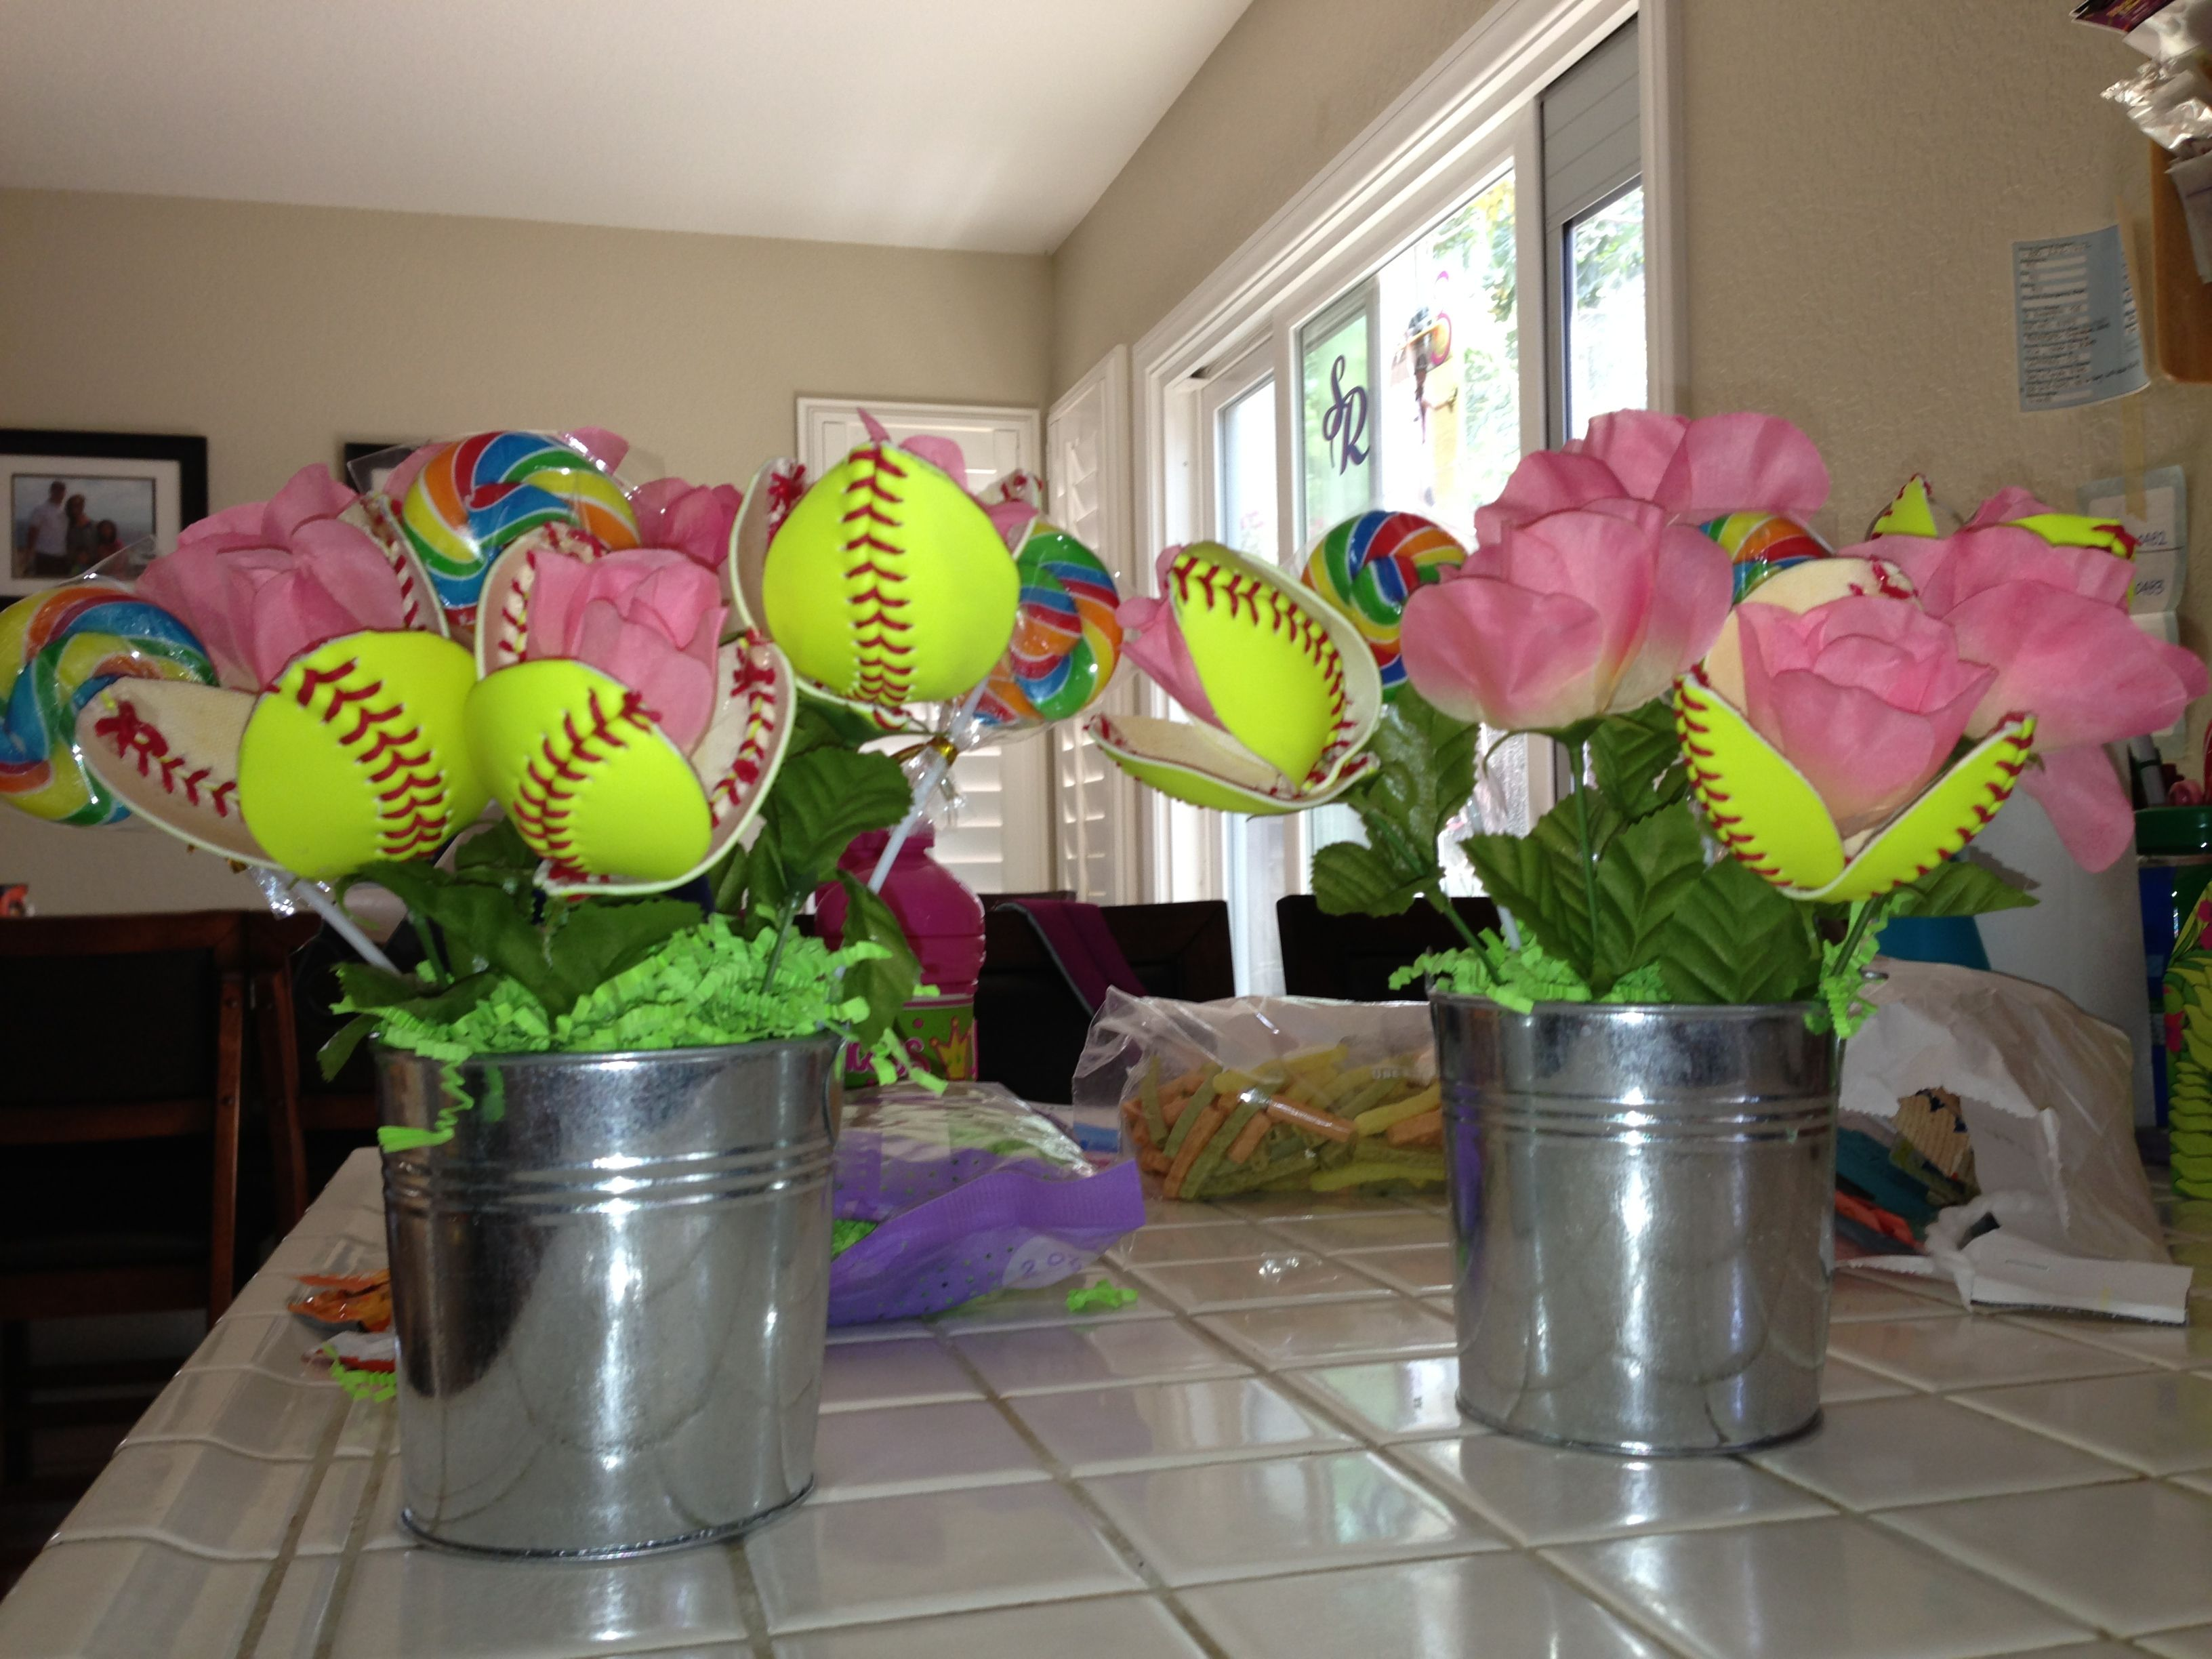 Softball flowers cut from real softballs found at the 99 cent